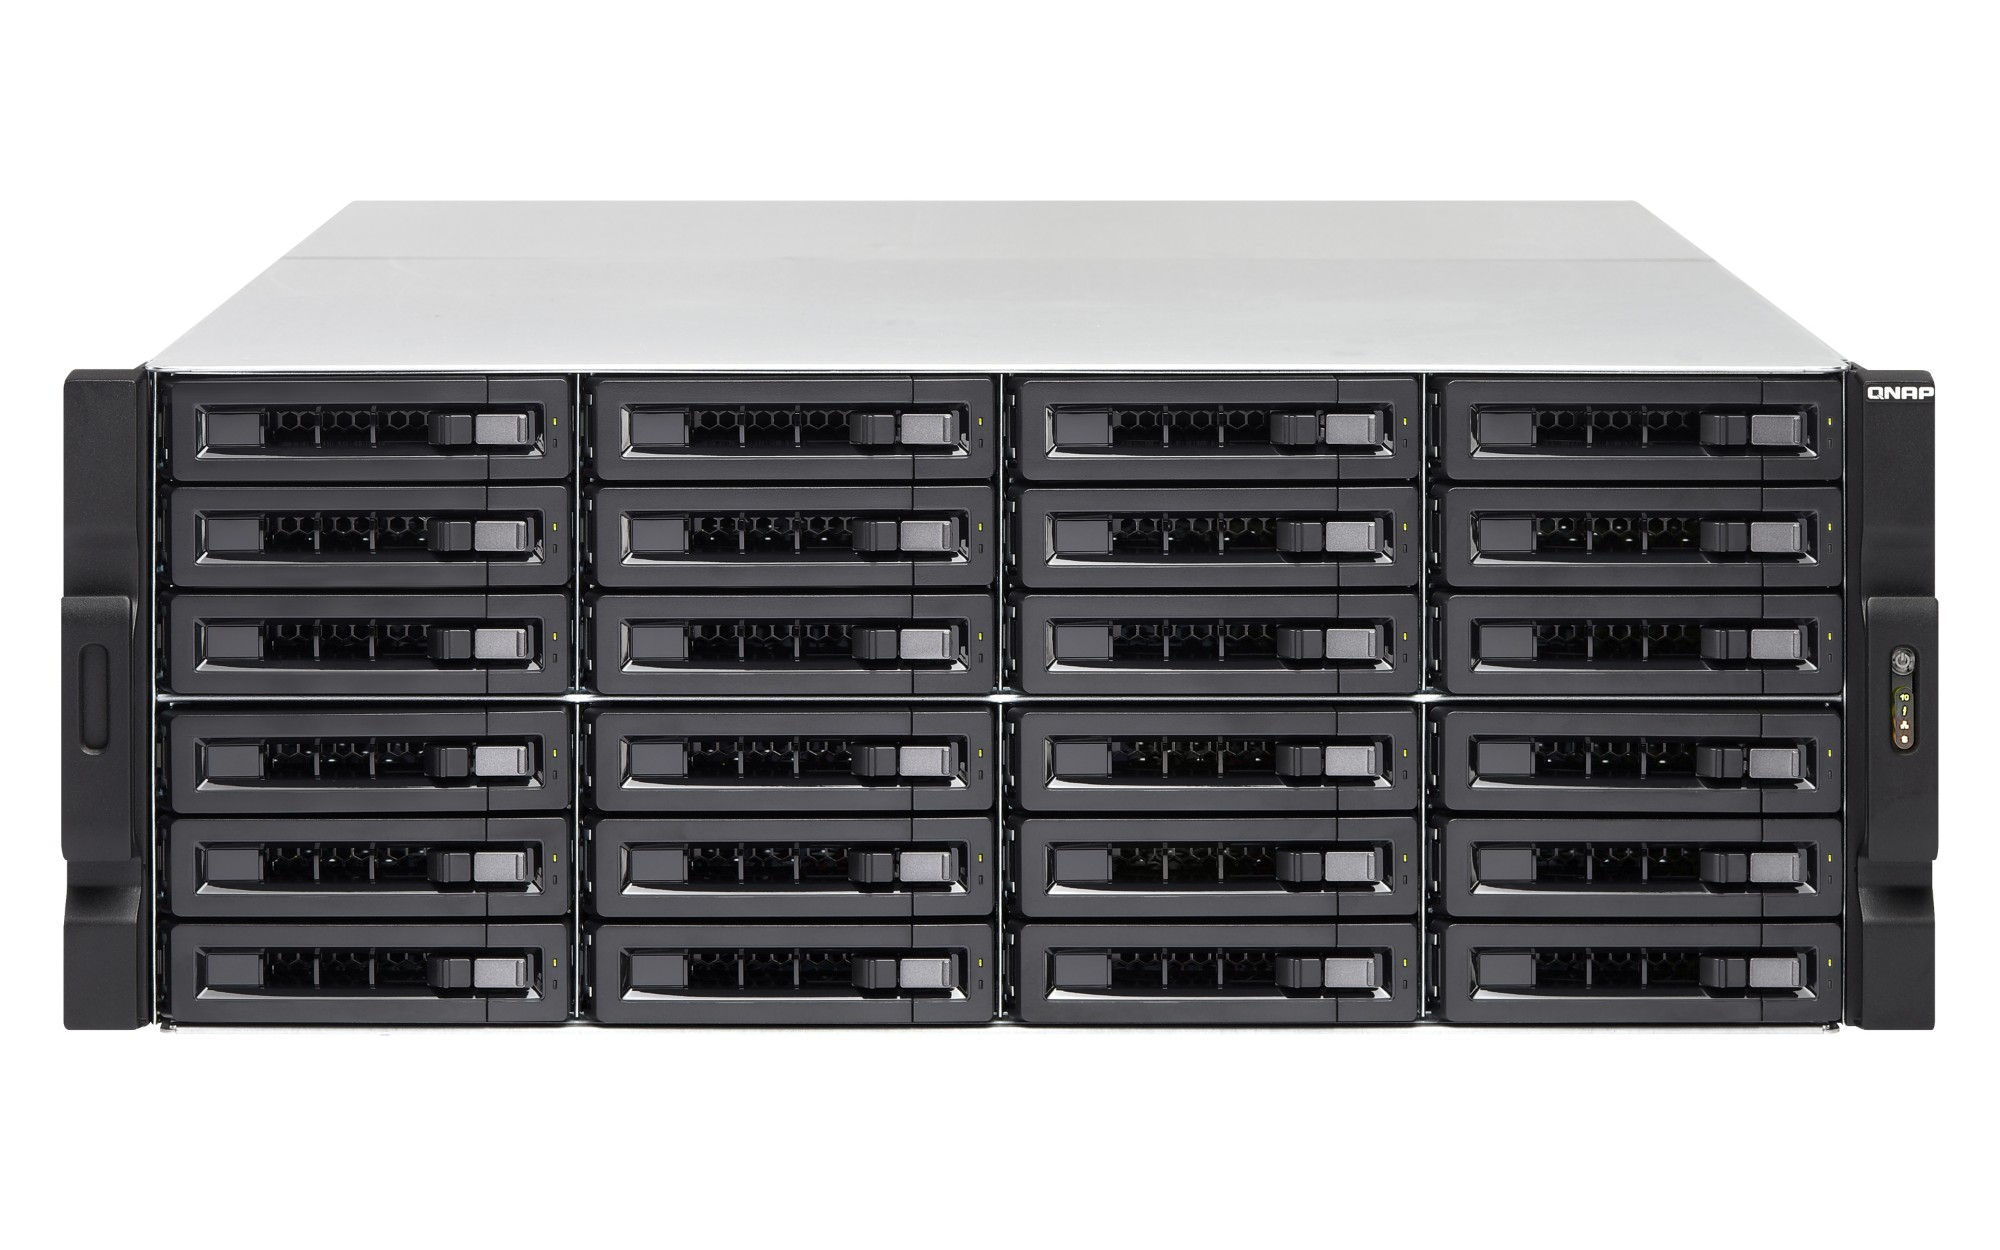 QNAP TS-EC2480U R2 NAS Rack (4U) Ethernet LAN Black,Grey